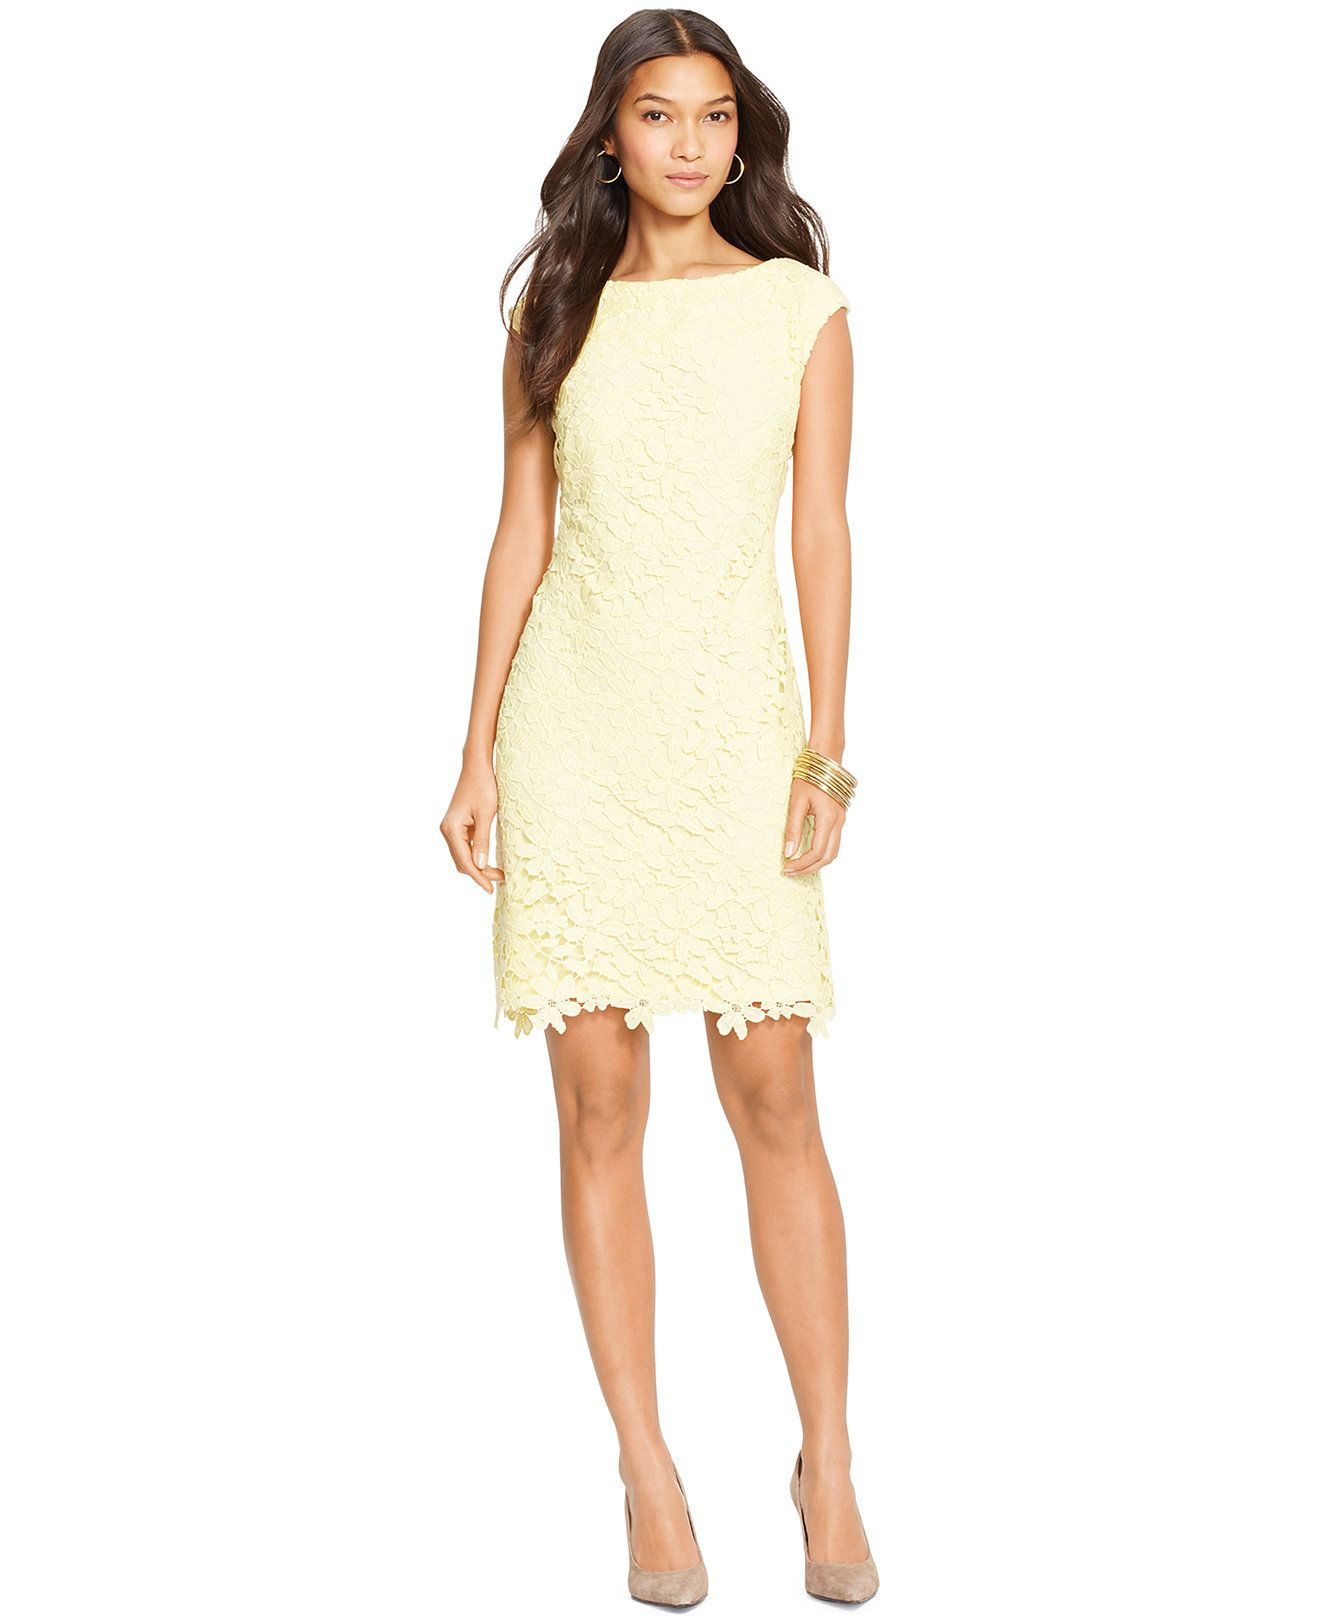 Lauren ralph lauren lace cap sleeve dress dresses women lauren ralph lauren lace cap sleeve dress dresses women macys ombrellifo Images